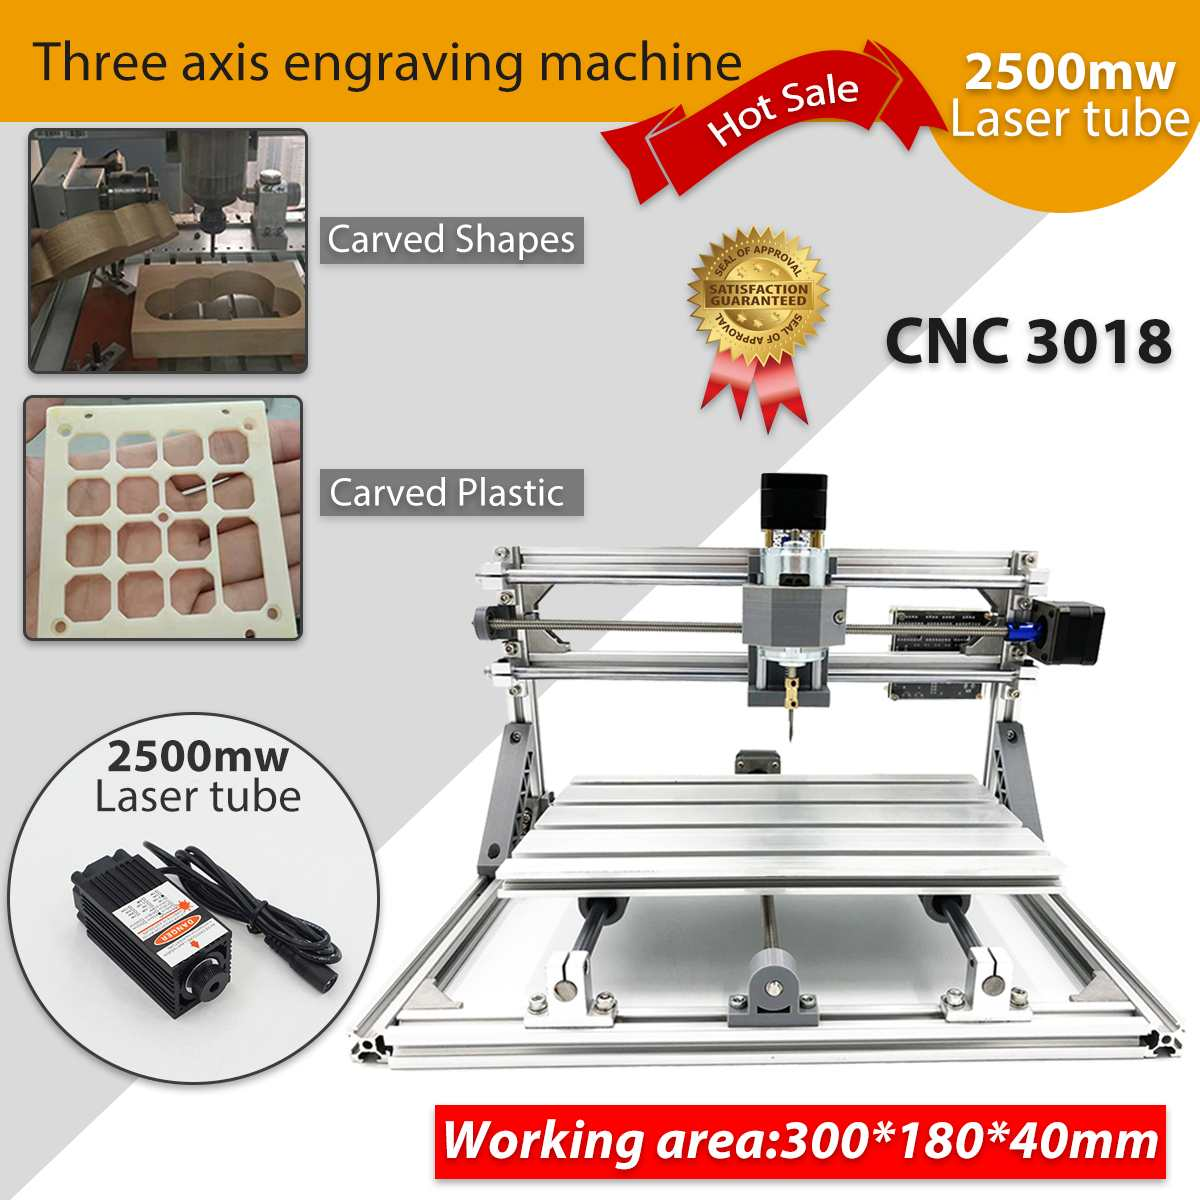 CNC DIY 3018 Wood Router KIt 3 Axis pcb Milling Machine Engraving Machine 2500mwCNC DIY 3018 Wood Router KIt 3 Axis pcb Milling Machine Engraving Machine 2500mw